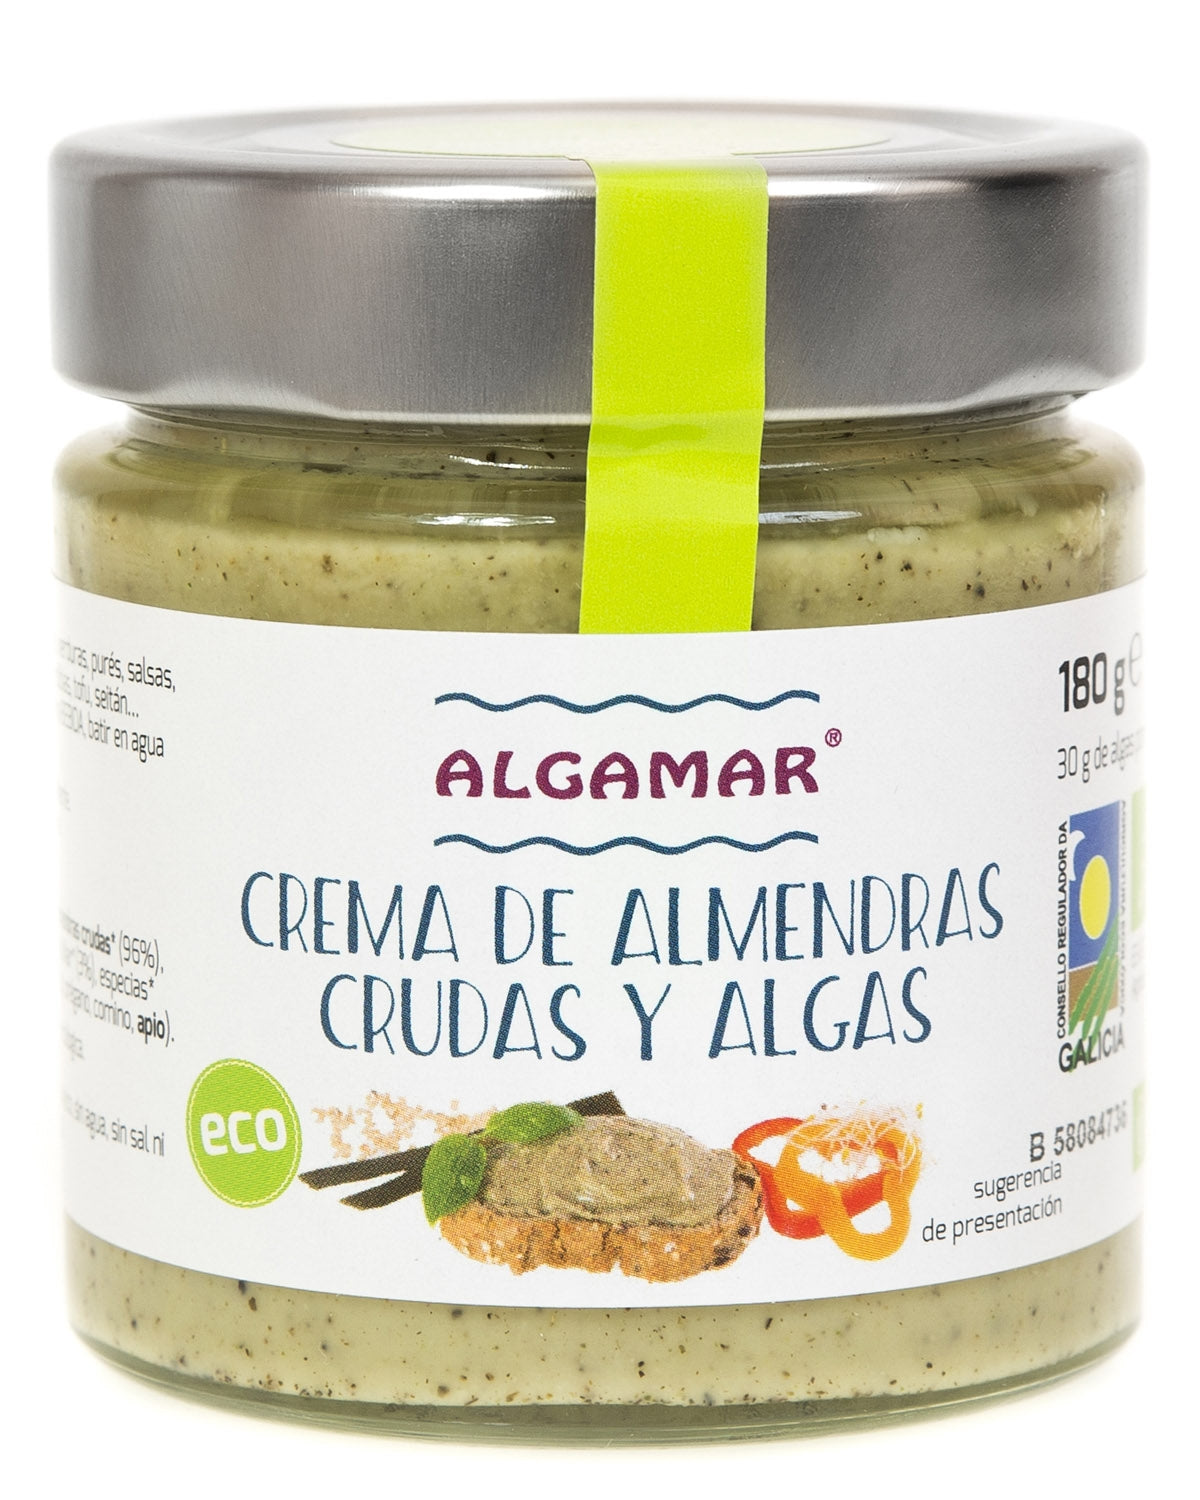 White Almond Butter with Sea Vegetables Organic (180g) - Algamar